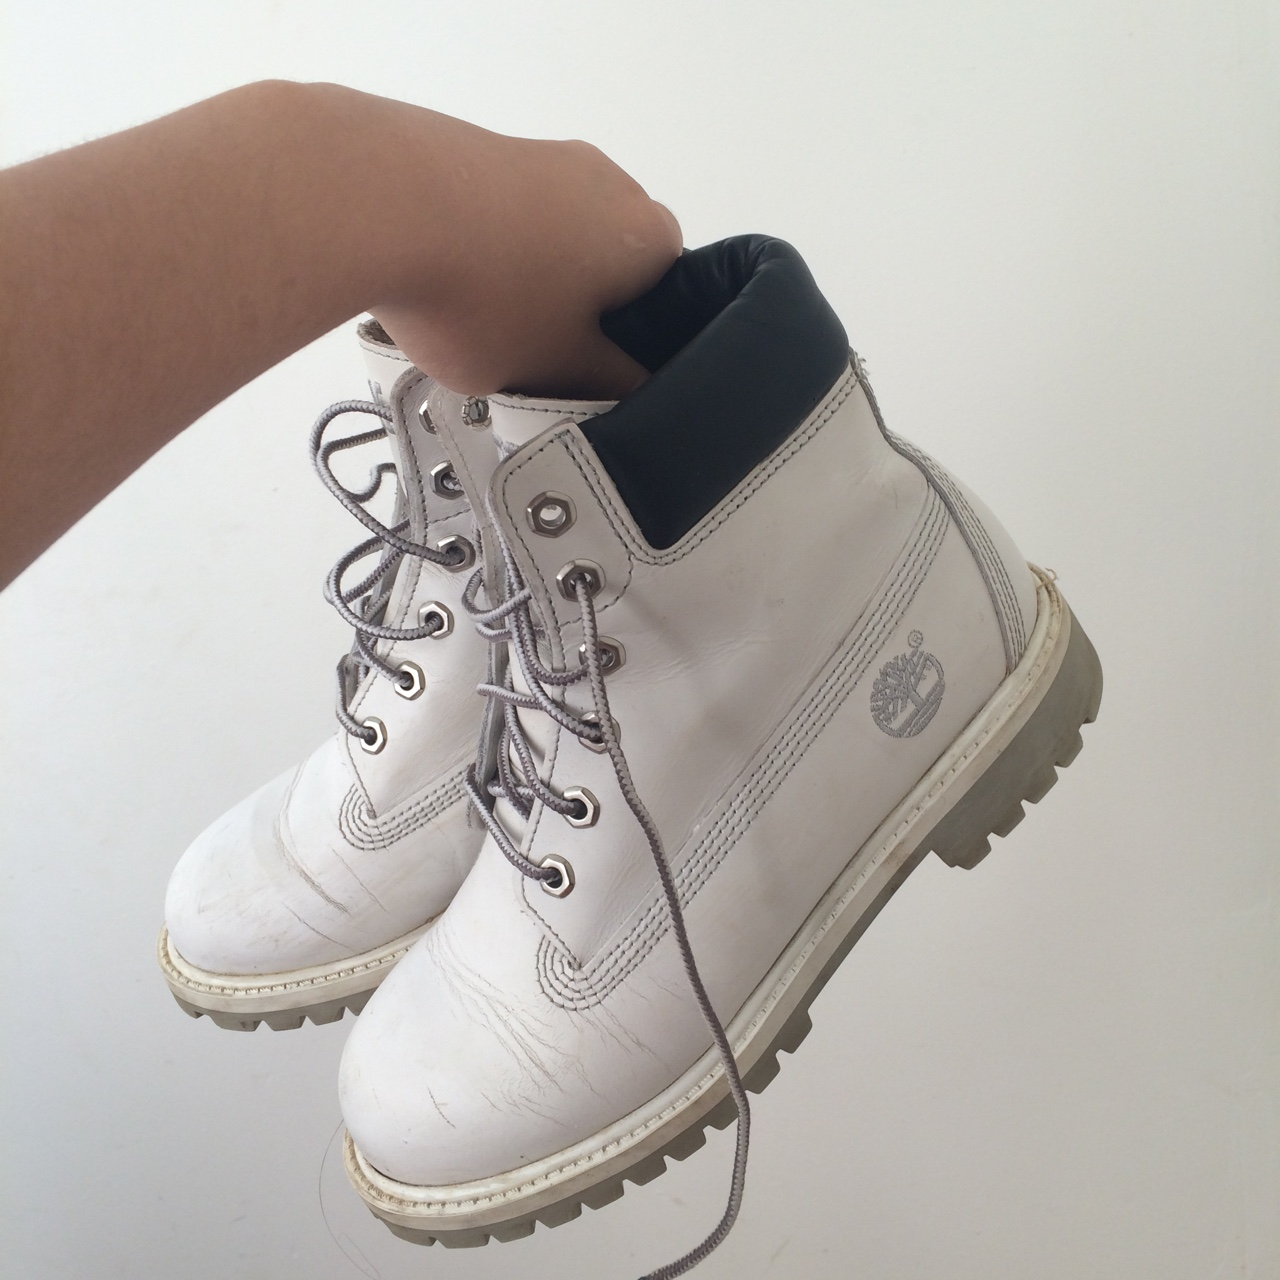 White timberlands! I had them for about a year, Depop